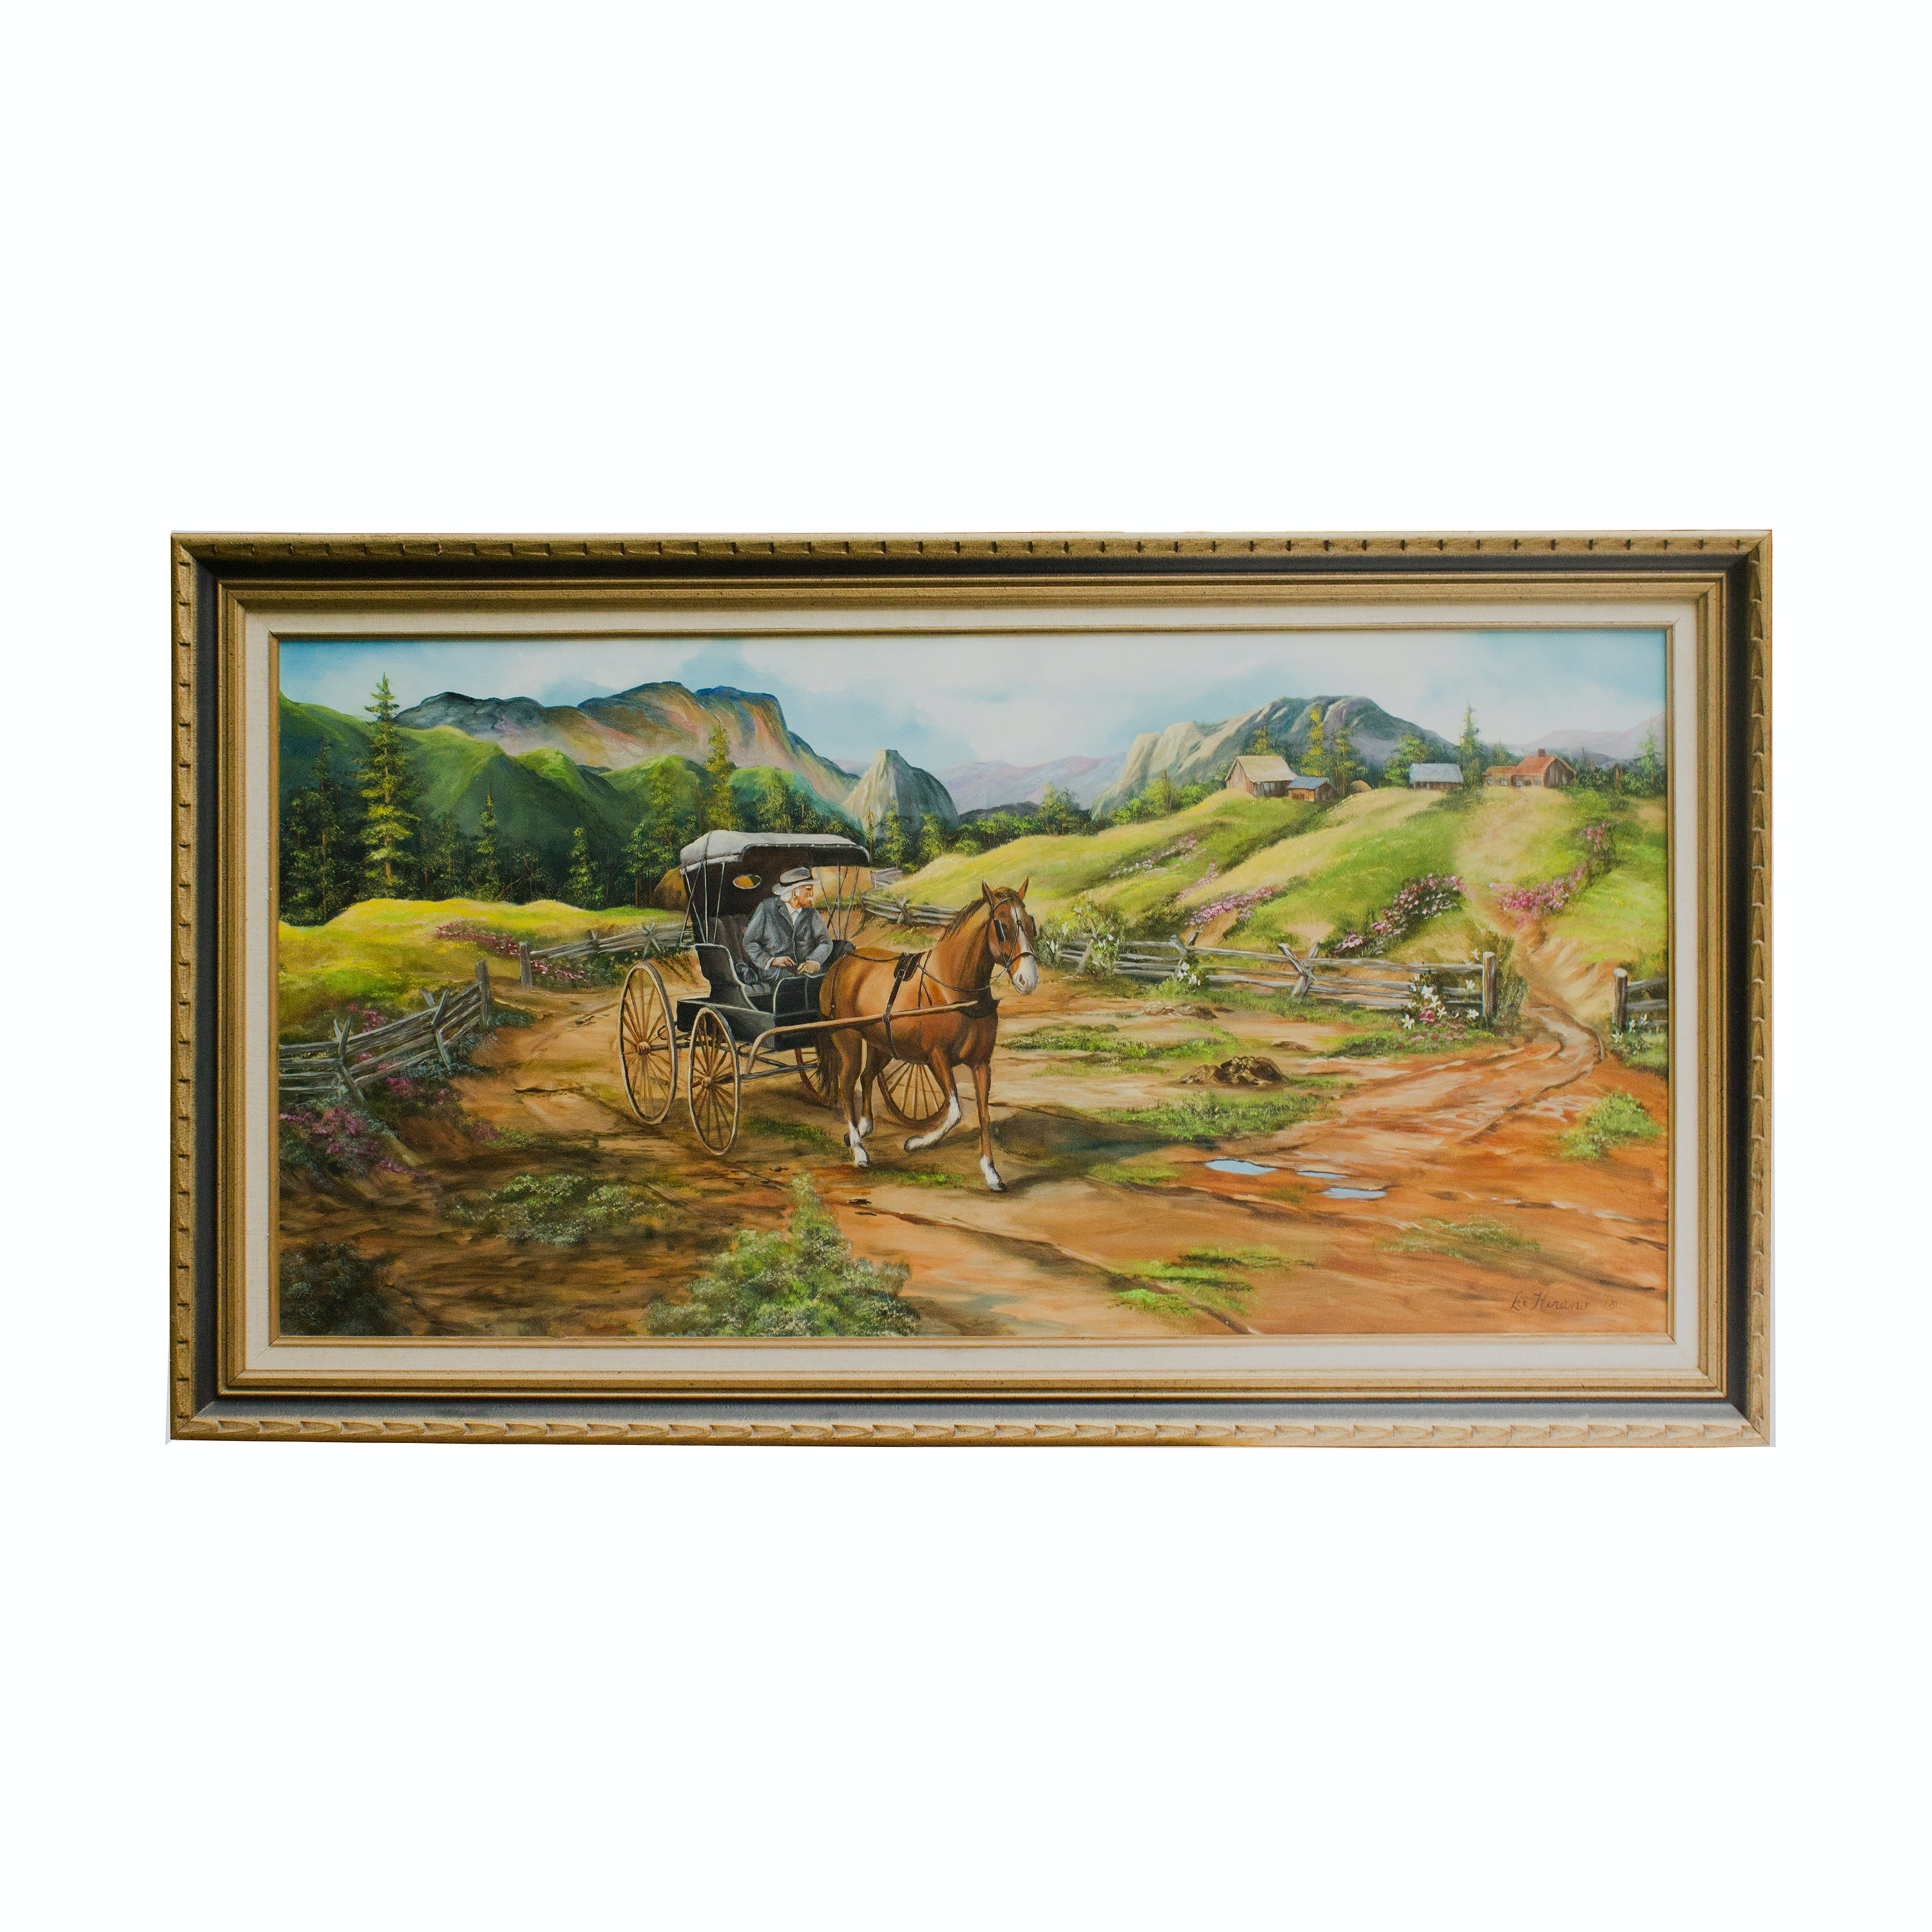 Lee Hirano Oil on Canvas Mountain Landscape With Horse-Drawn Carriage